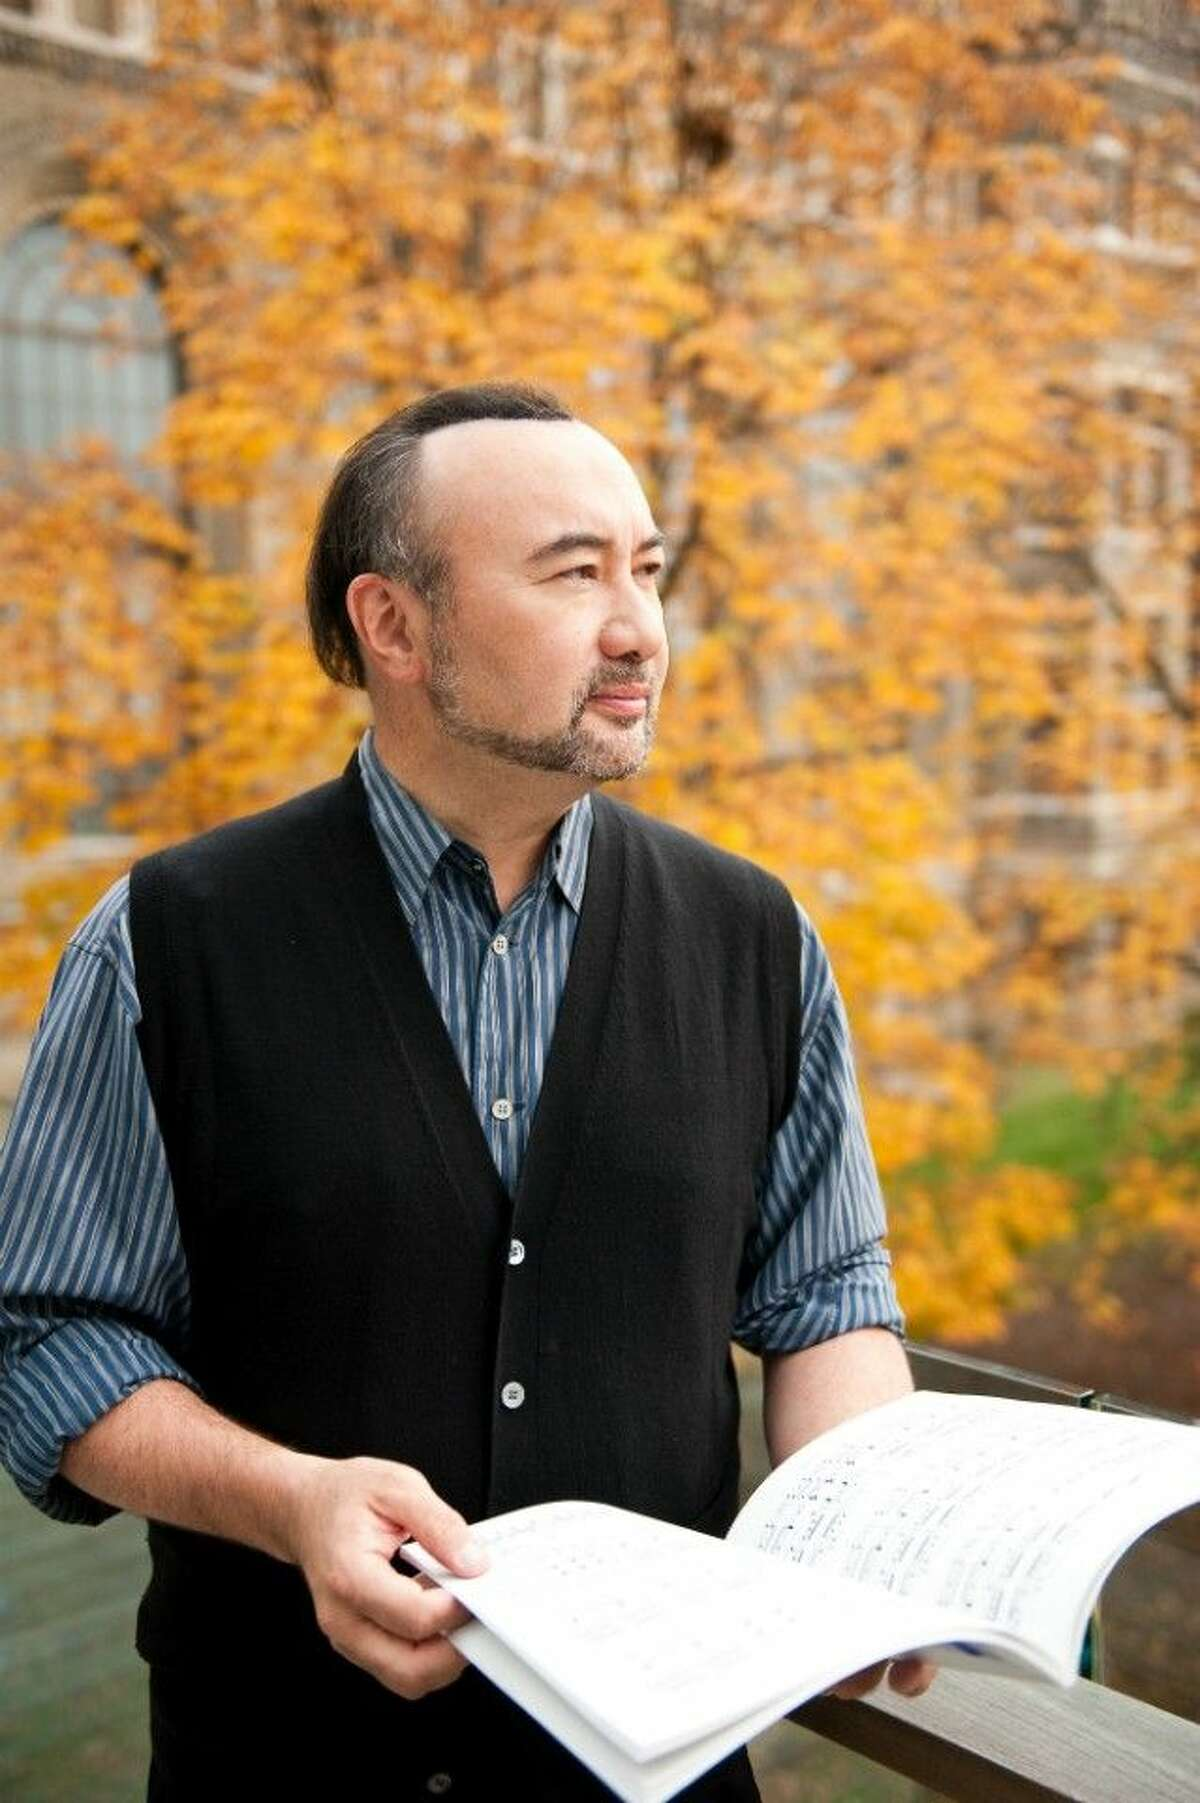 A veteran of the international concert stage, Jon Kimura Parker has performed as guest soloist with the Philadelphia Orchestra and Wolfgang Sawallisch in Carnegie Hall, toured Europe with the Royal Philharmonic Orchestra and Andre Previn, and shared the stage with Jessye Norman at Berlin's famed Philharmonie.